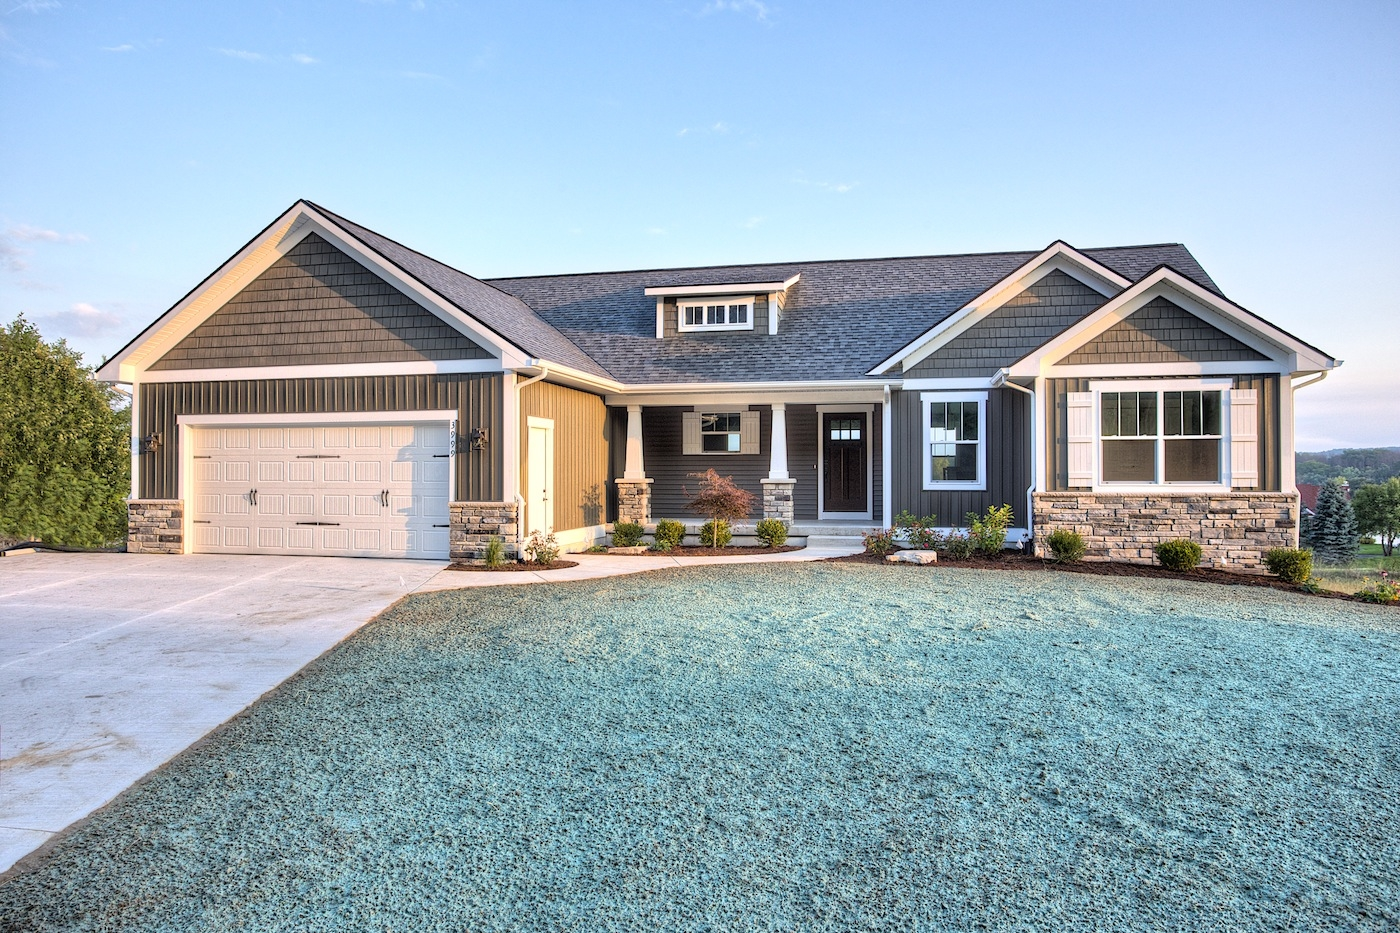 One Story Home Plans With Walkout Basement